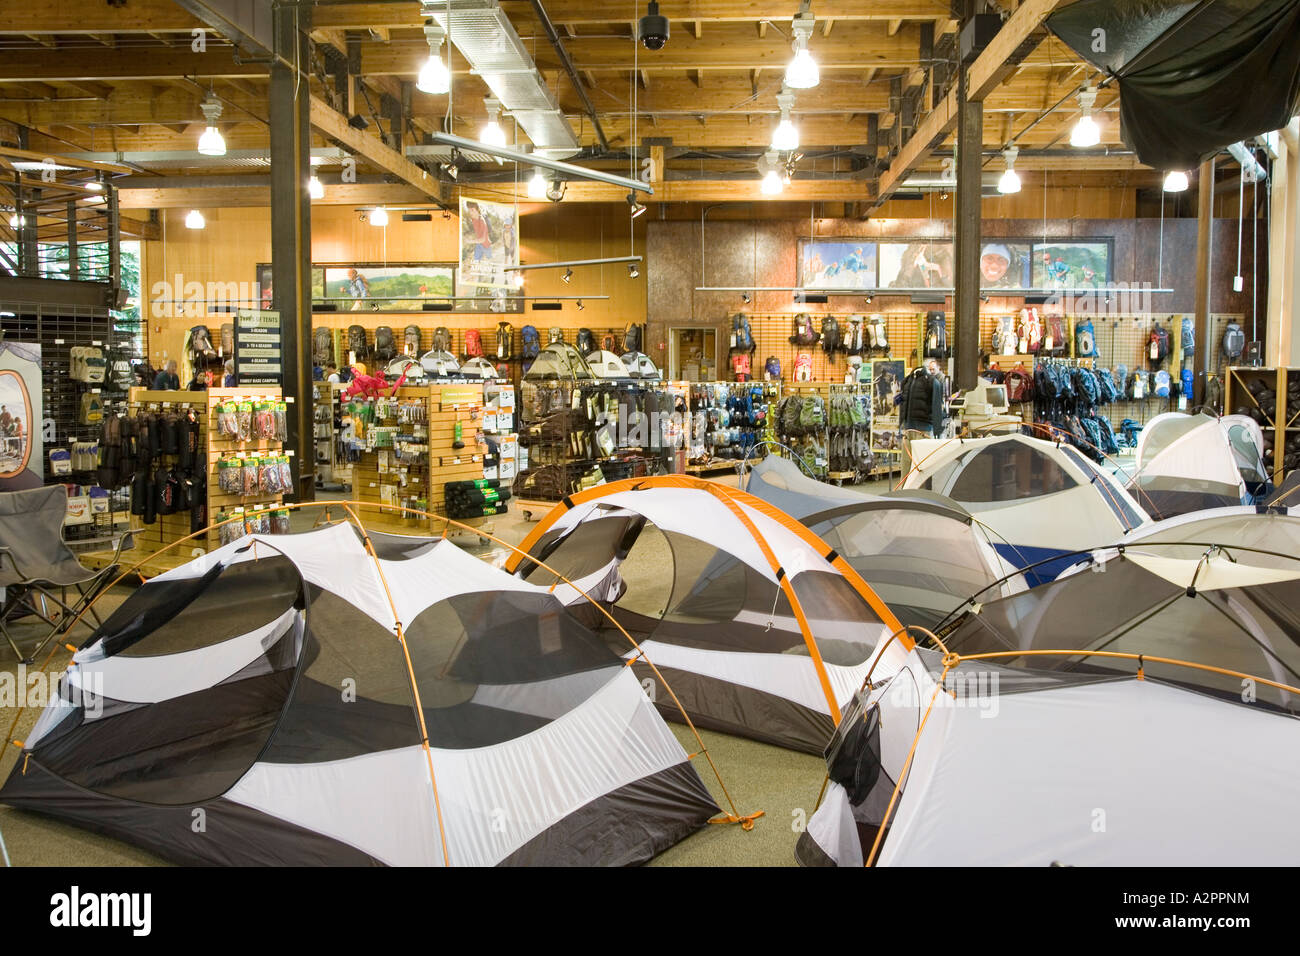 Tents and c&ing and outdoor equipment on sale Seattle USA & Tents and camping and outdoor equipment on sale Seattle USA Stock ...